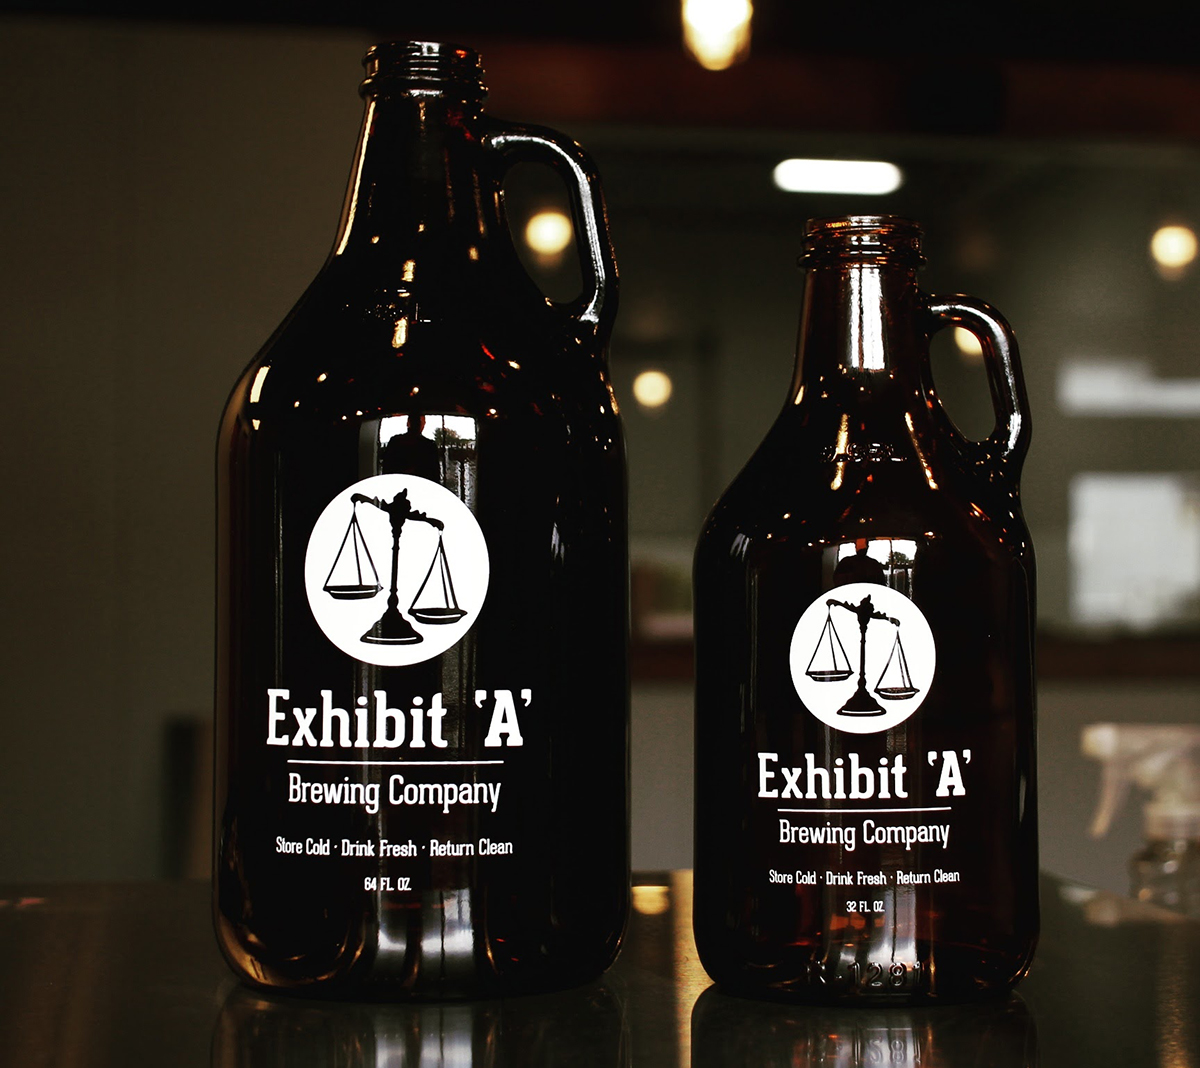 Exhibit 'A' Brewing Company growlers